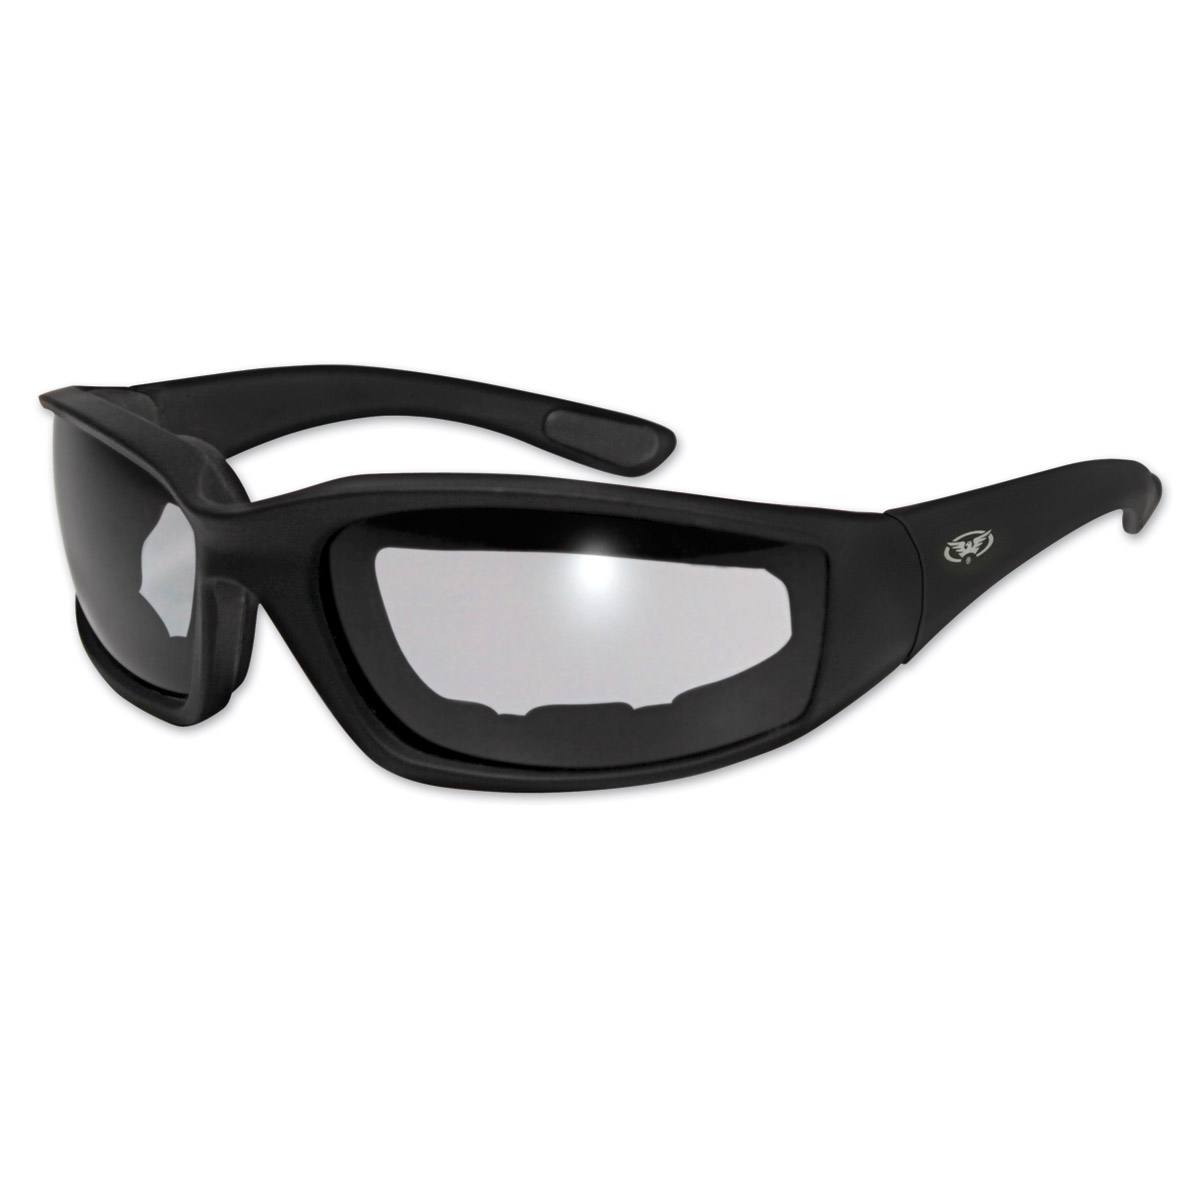 Global Vision Eyewear Kickback 24 Black Photochromic Sunglasses